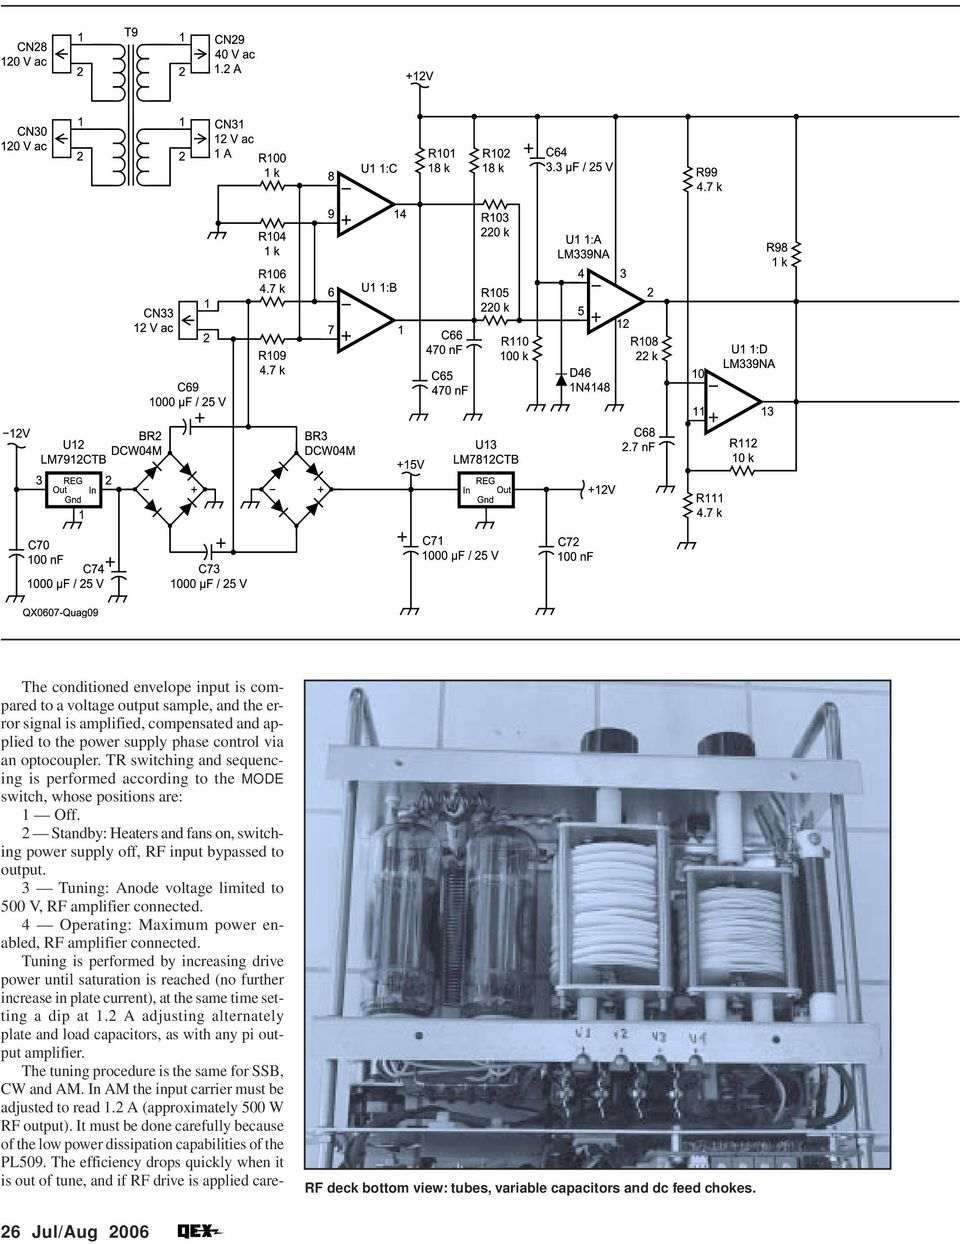 An Innovative 2 Kw Linear Tube Amplifier Pdf 20w Hifi Power With Tda2040 Schematic Design 3 Tuning Anode Voltage Limited To 500 V Rf Connected 4 Operating